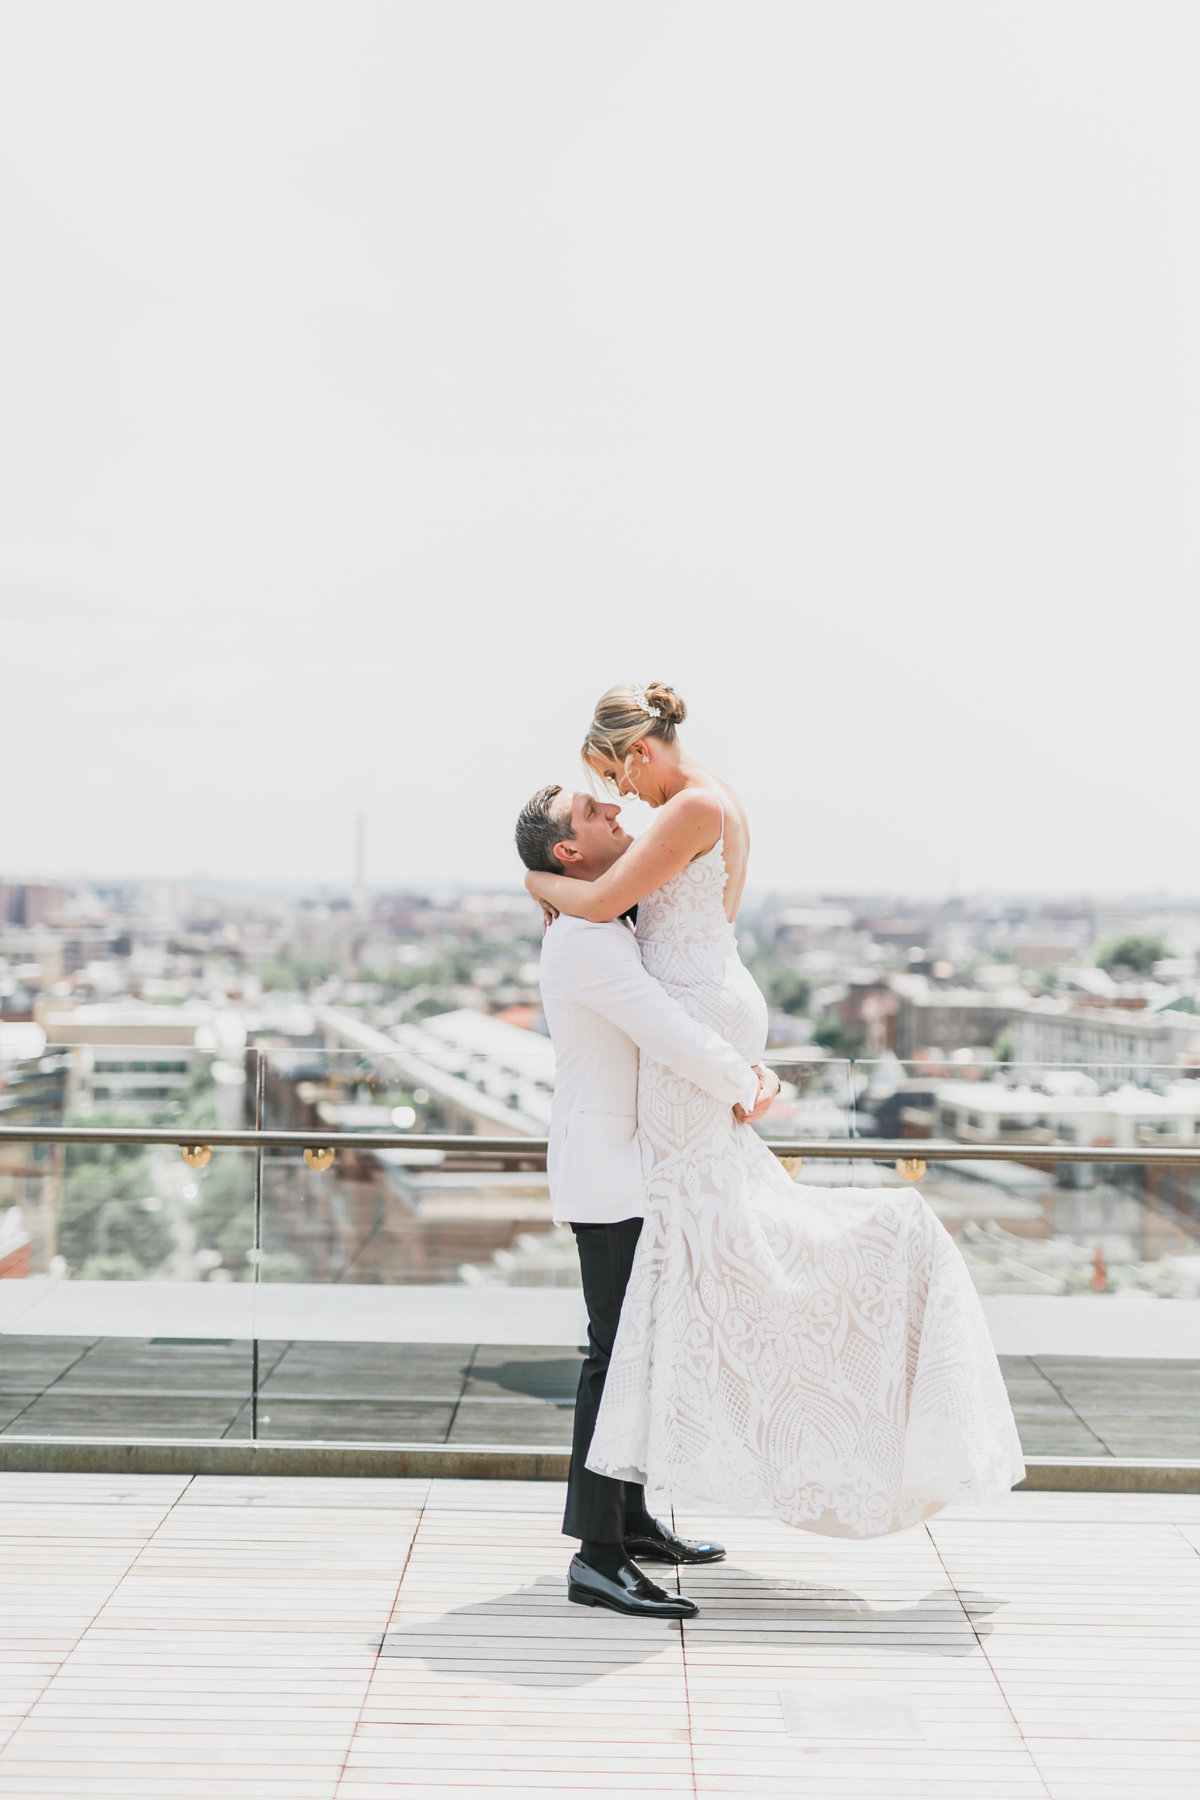 Washington D.C. Wedding Photographer - M Harris Studios-260